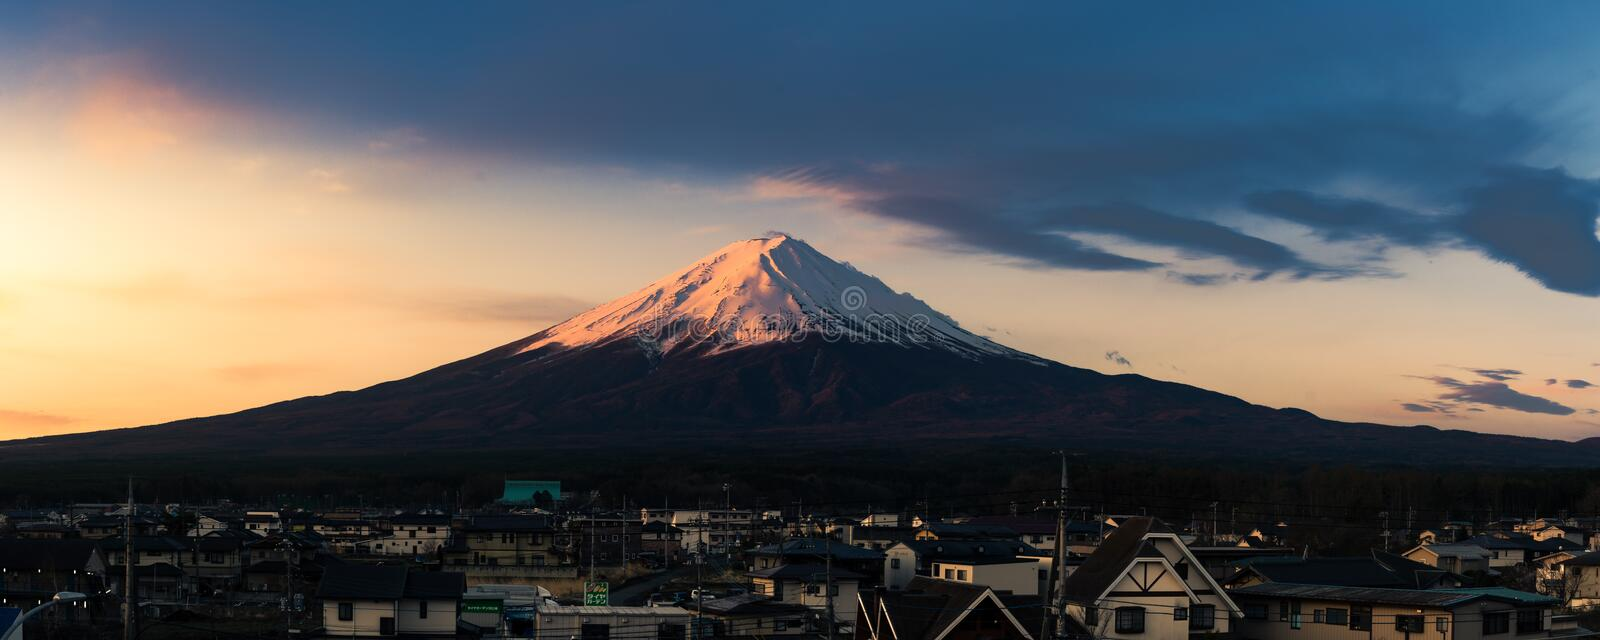 Berg Fuji in Japan lizenzfreie stockfotos